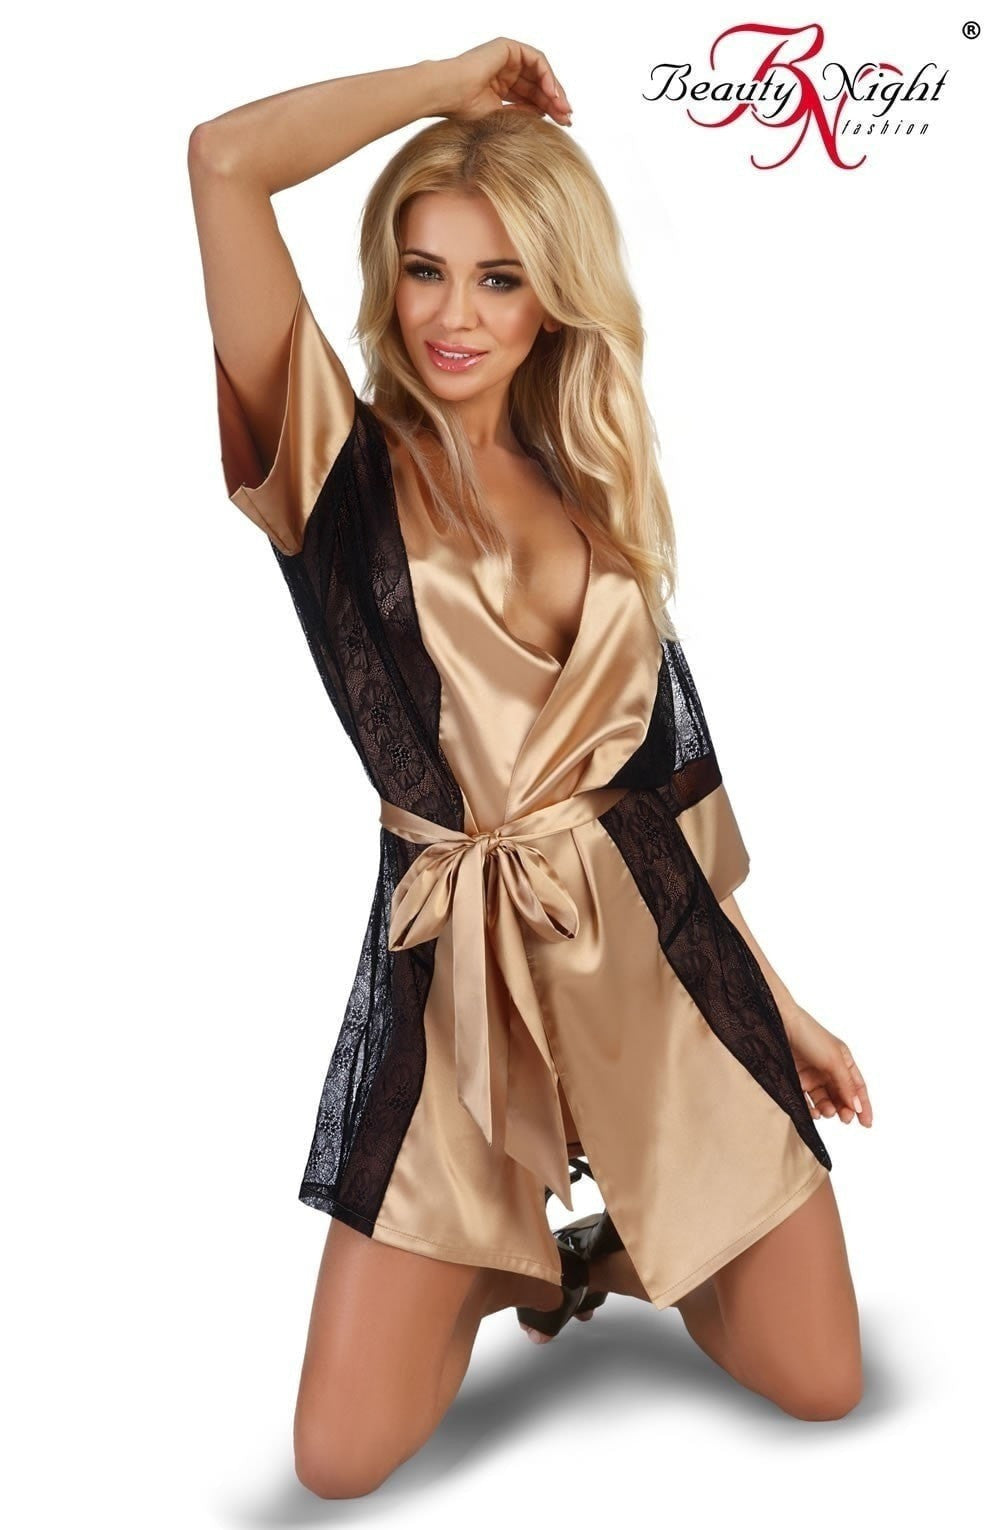 Beauty Night Stephanie Dressing Gown Set (Gold) - Dressing Gowns - Beauty Night - Charm and Lace Boutique